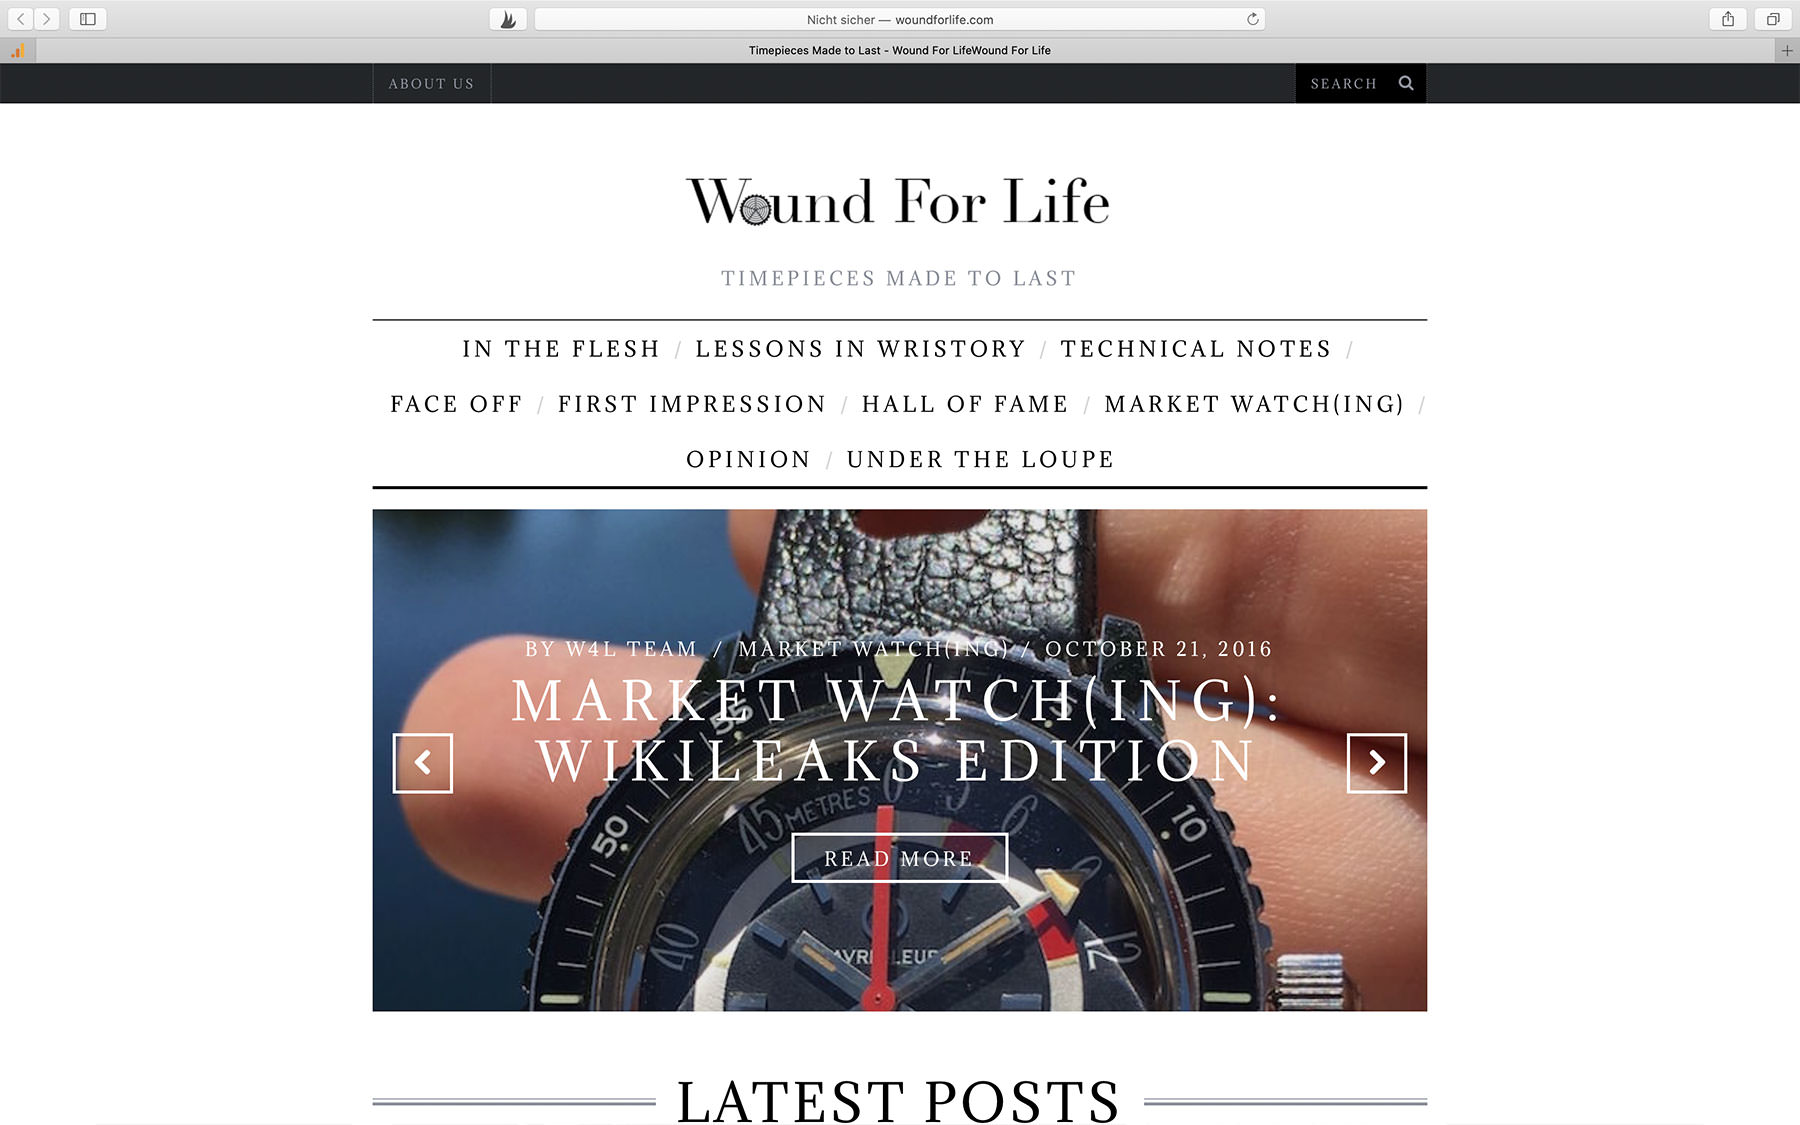 Watch Blogs wound for life